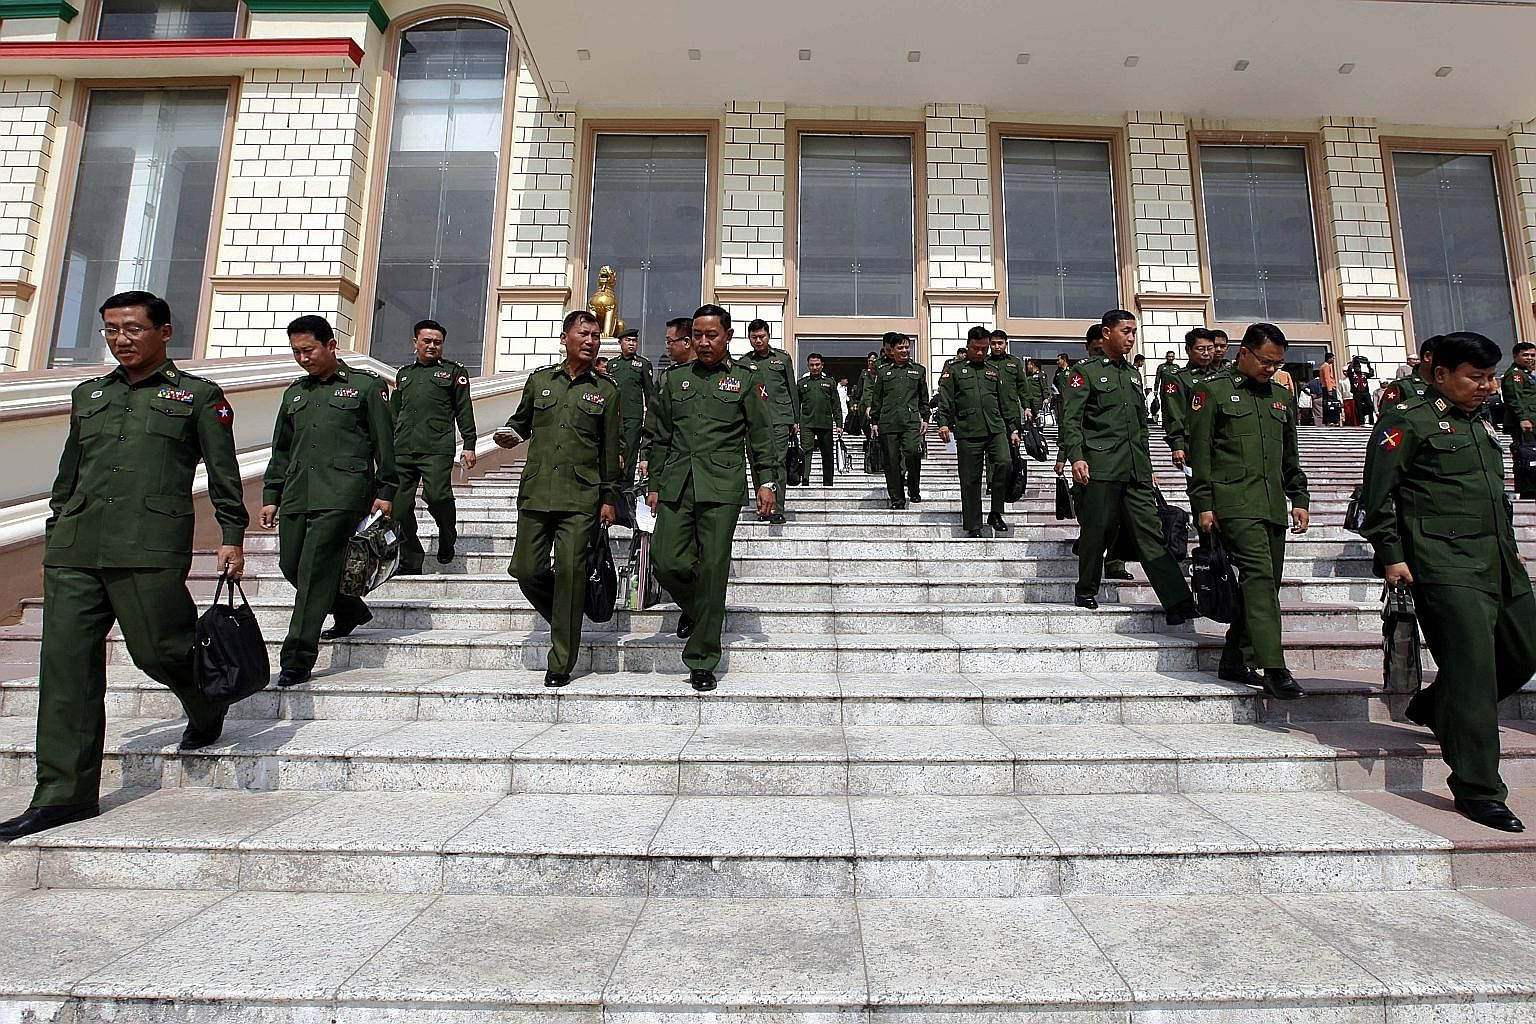 Myanmar's military controls certain key ministries as well as a quarter of all parliamentary seats.